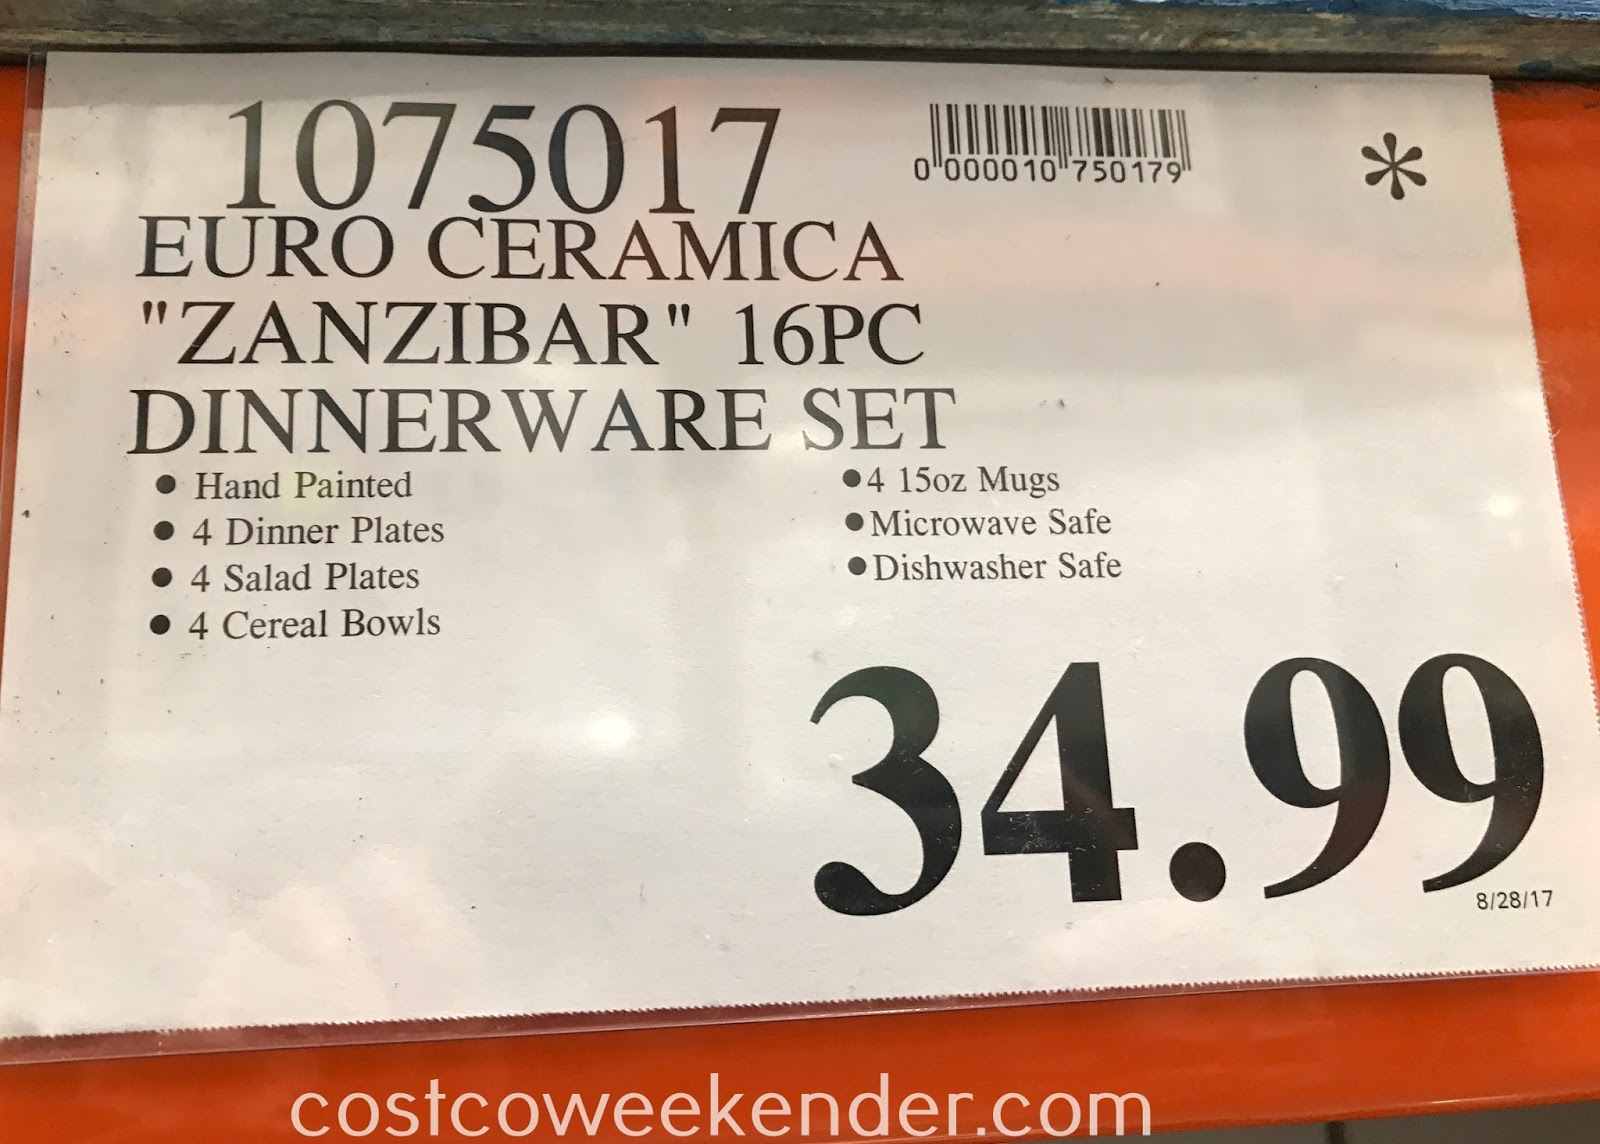 Deal for the Euro Ceramica Zanzibar 16 Piece Dinnerware Set at Costco